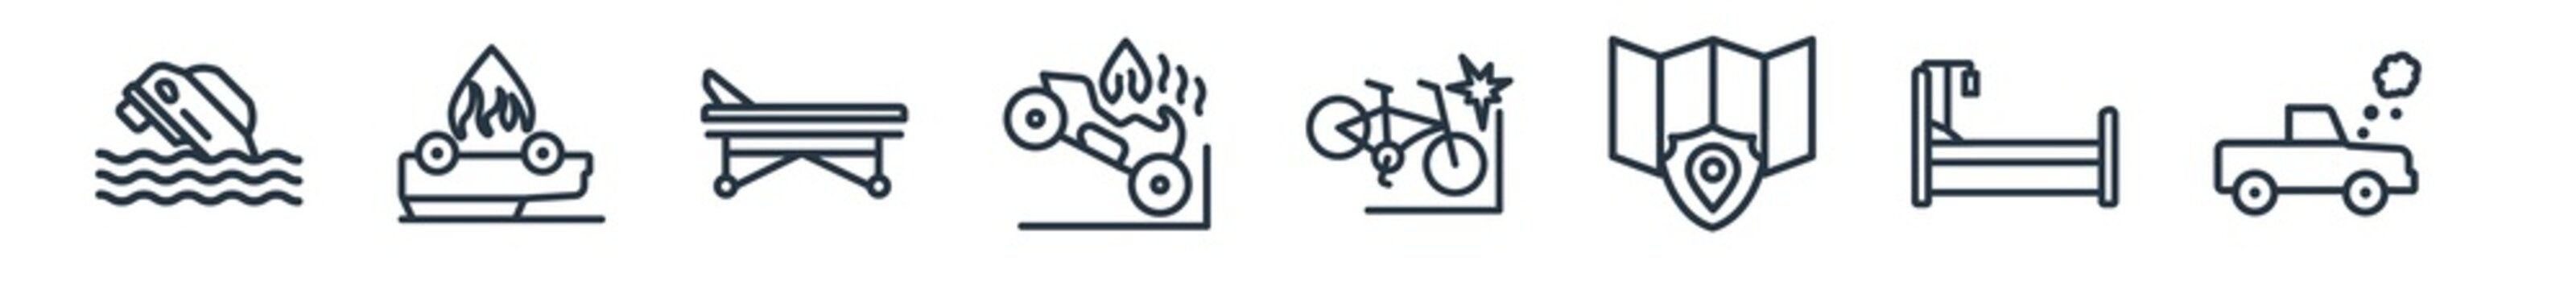 linear set of insurance outline icons. line vector icons such as flood risk, overturned car, hospital bed, motorcycle accident, becycle accident, total loss vector illustration.